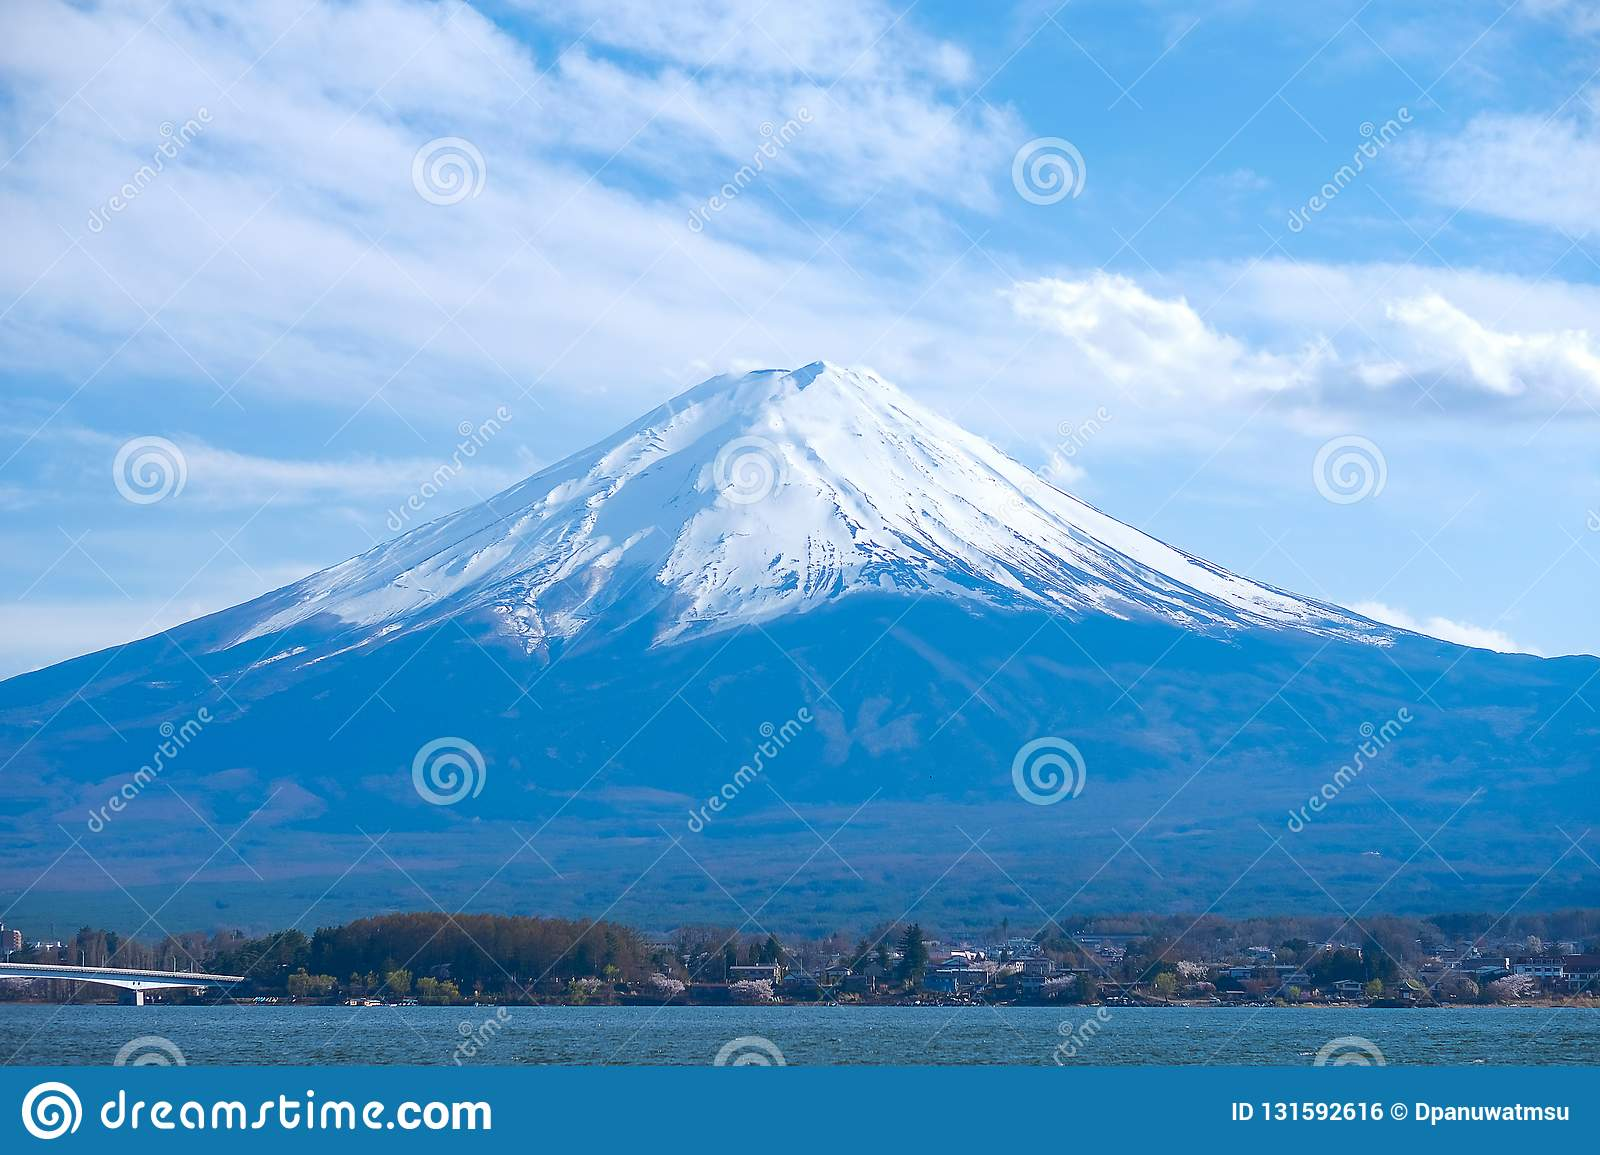 Beautiful Mount Fuji with snow capped and sky at Lake kawaguchiko, Japan. landmark and popular for tourist attractions